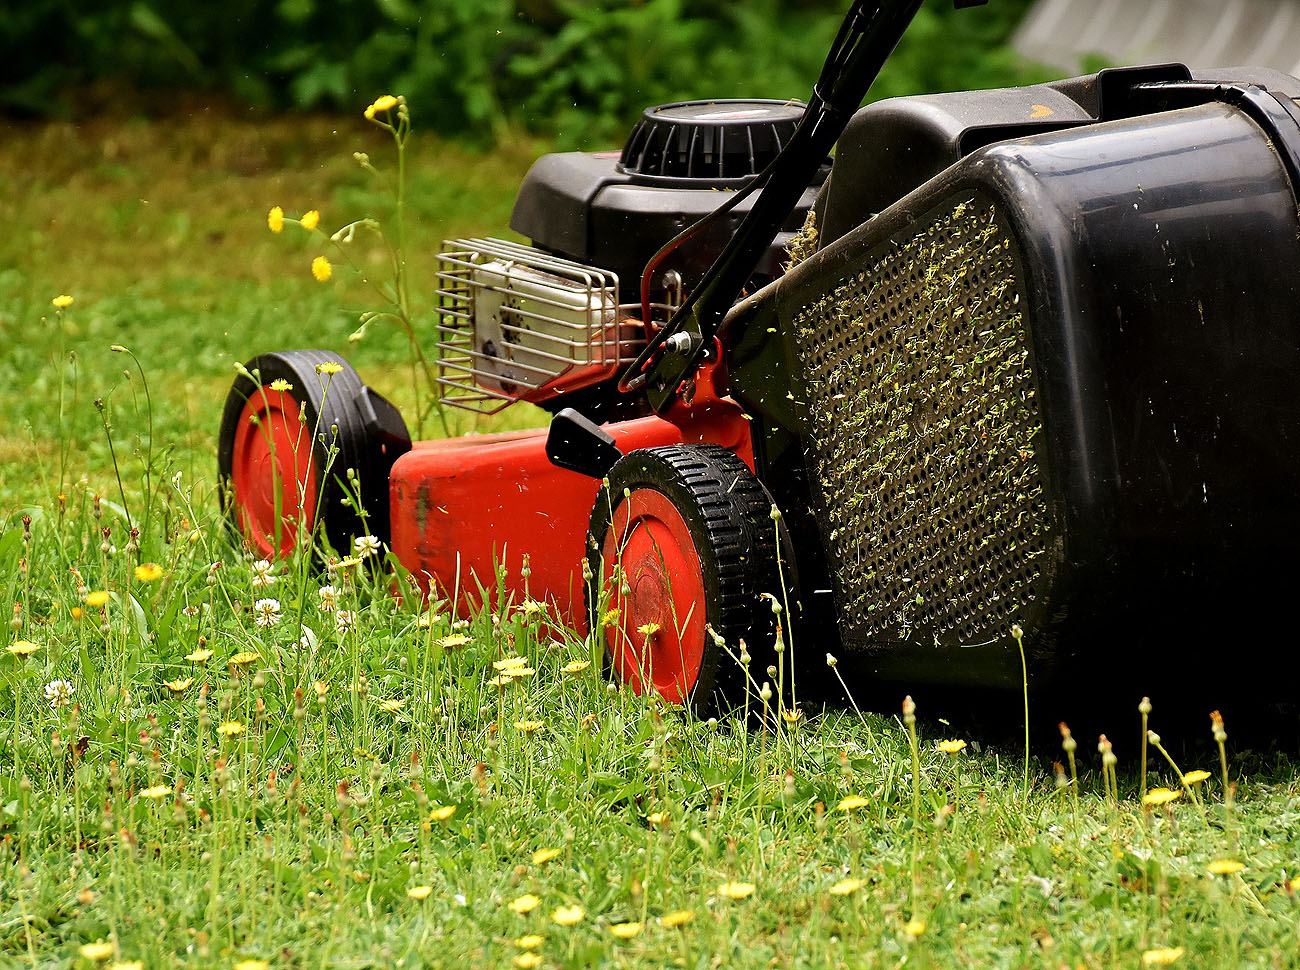 Allwinds Ground Maintenace provide fully professional services in garden maintenance, grounds maintenance, landscape gardening, lawncare, lawn cutting and tree care management throughout Hertfordshire and Buckinghamshire